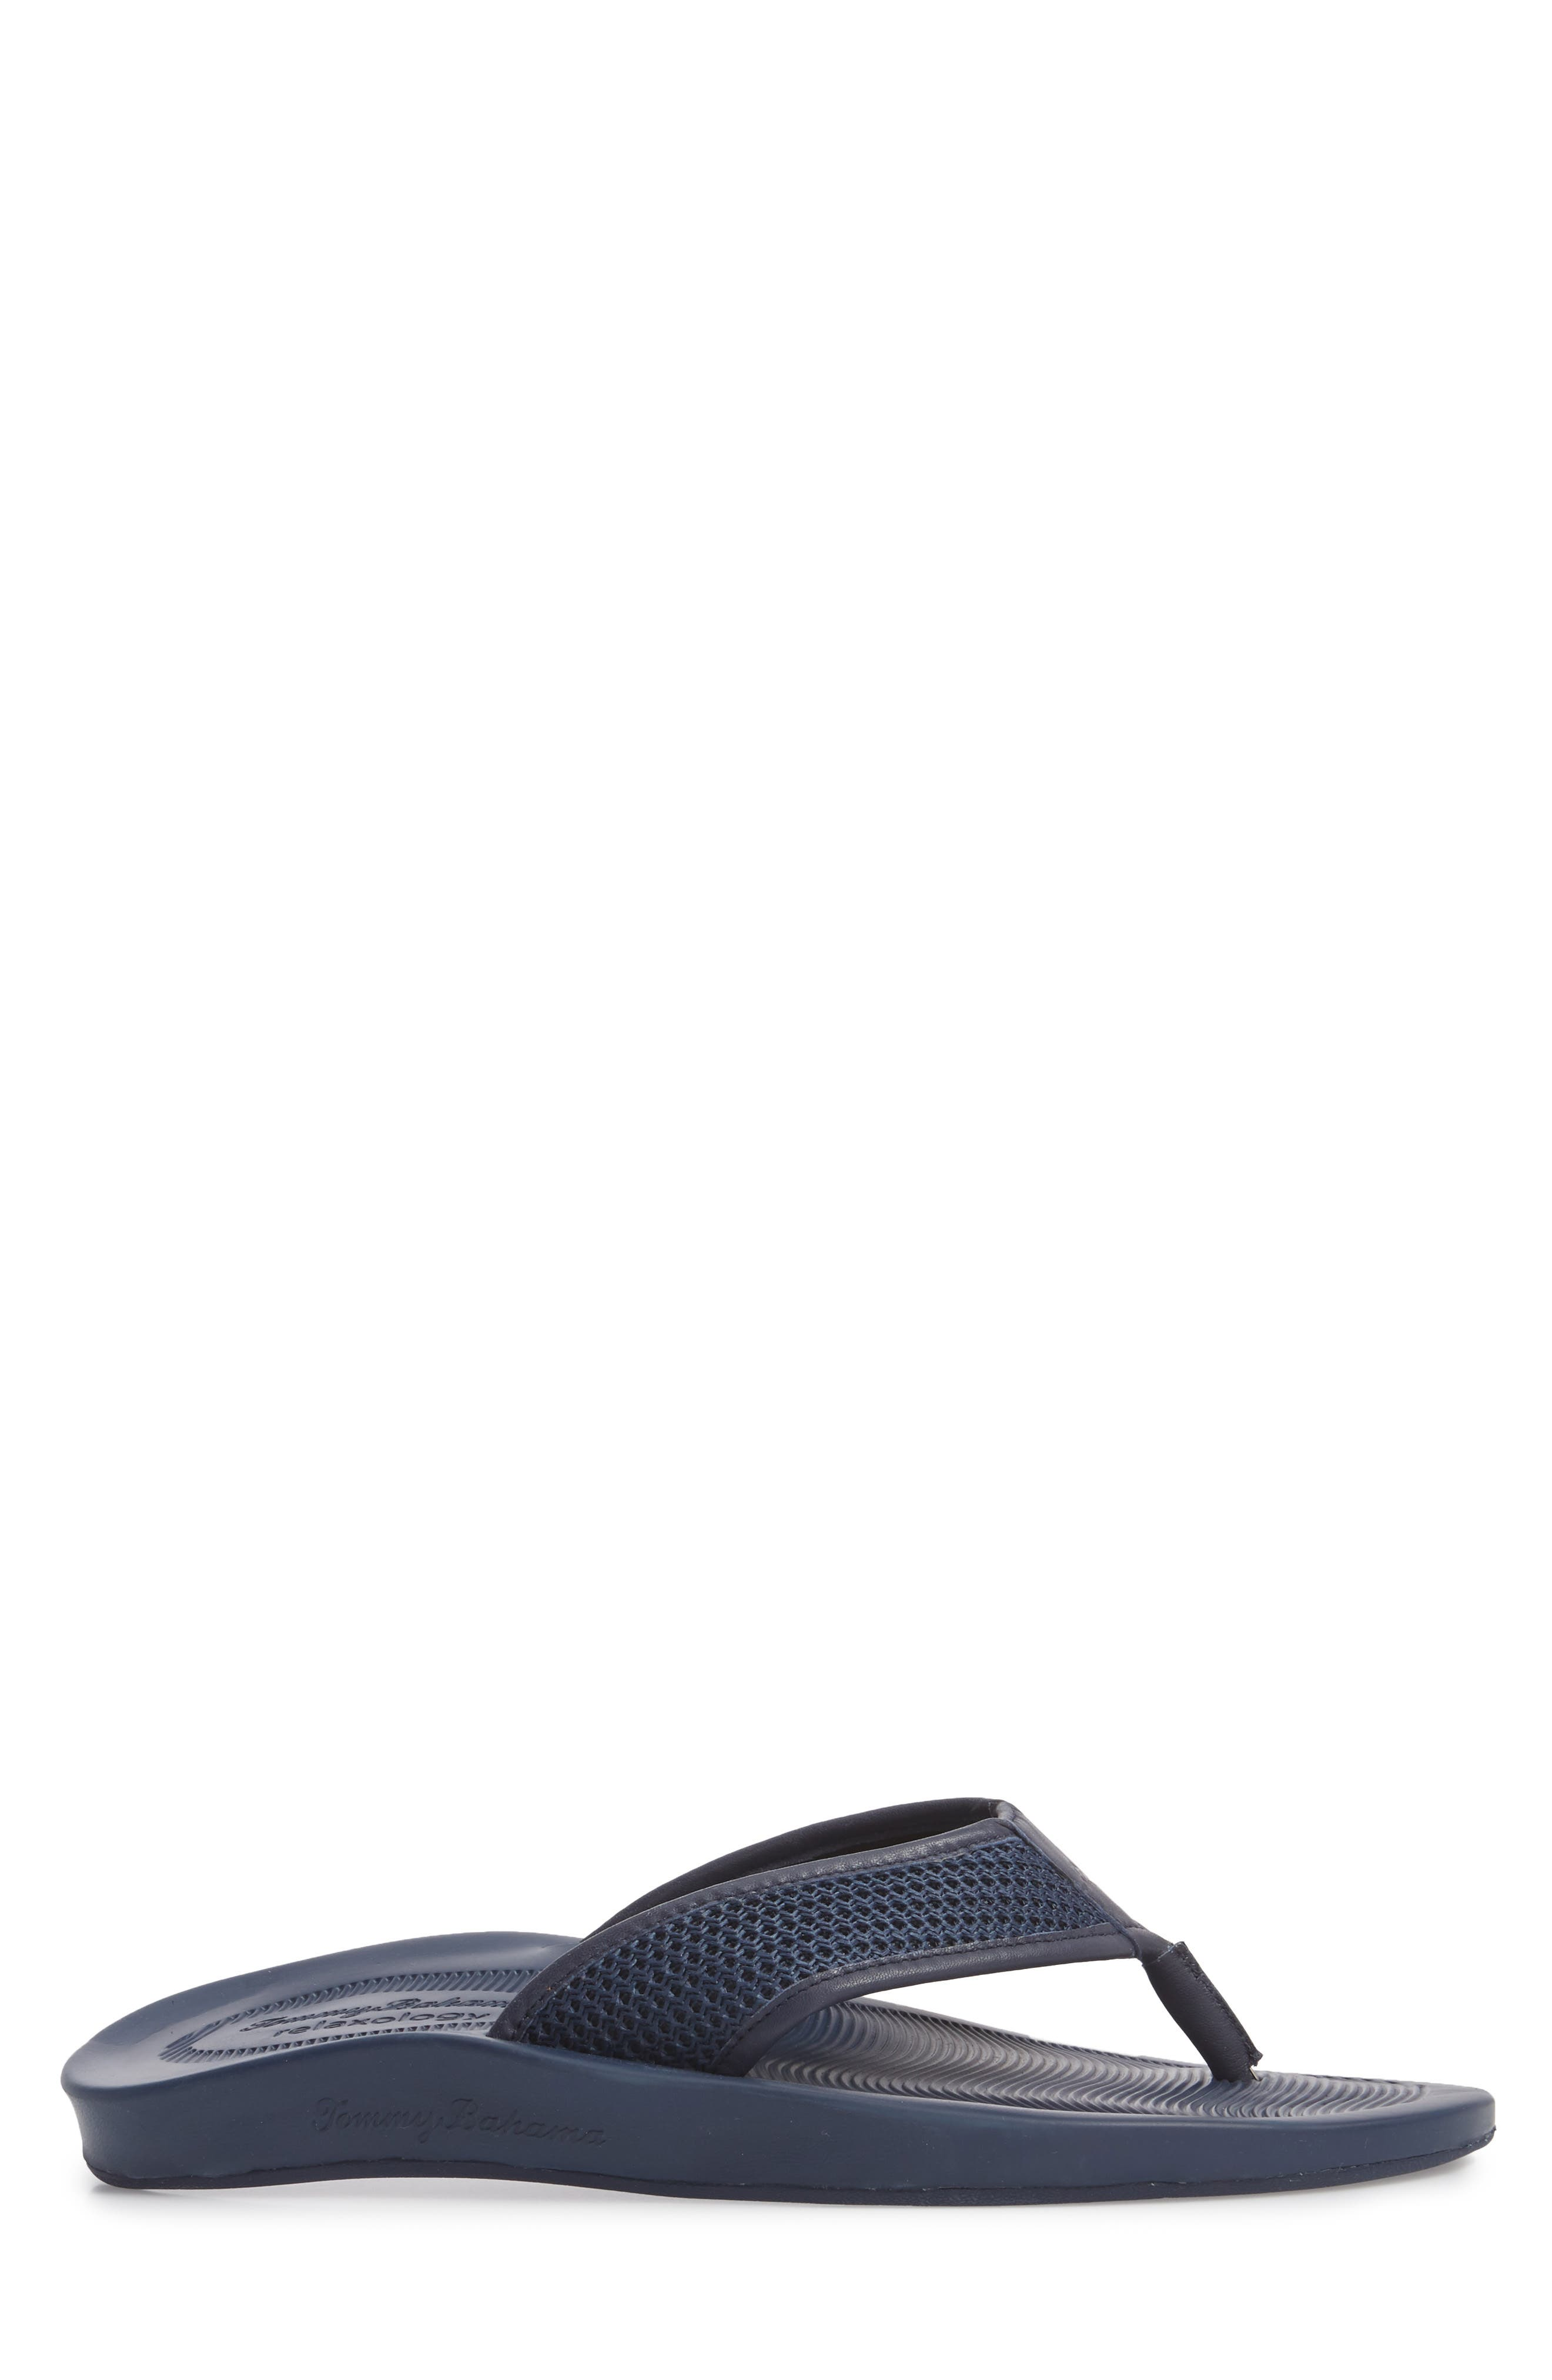 Shallows Edge Mesh Flip Flop,                             Alternate thumbnail 3, color,                             Navy Mesh/ Leather